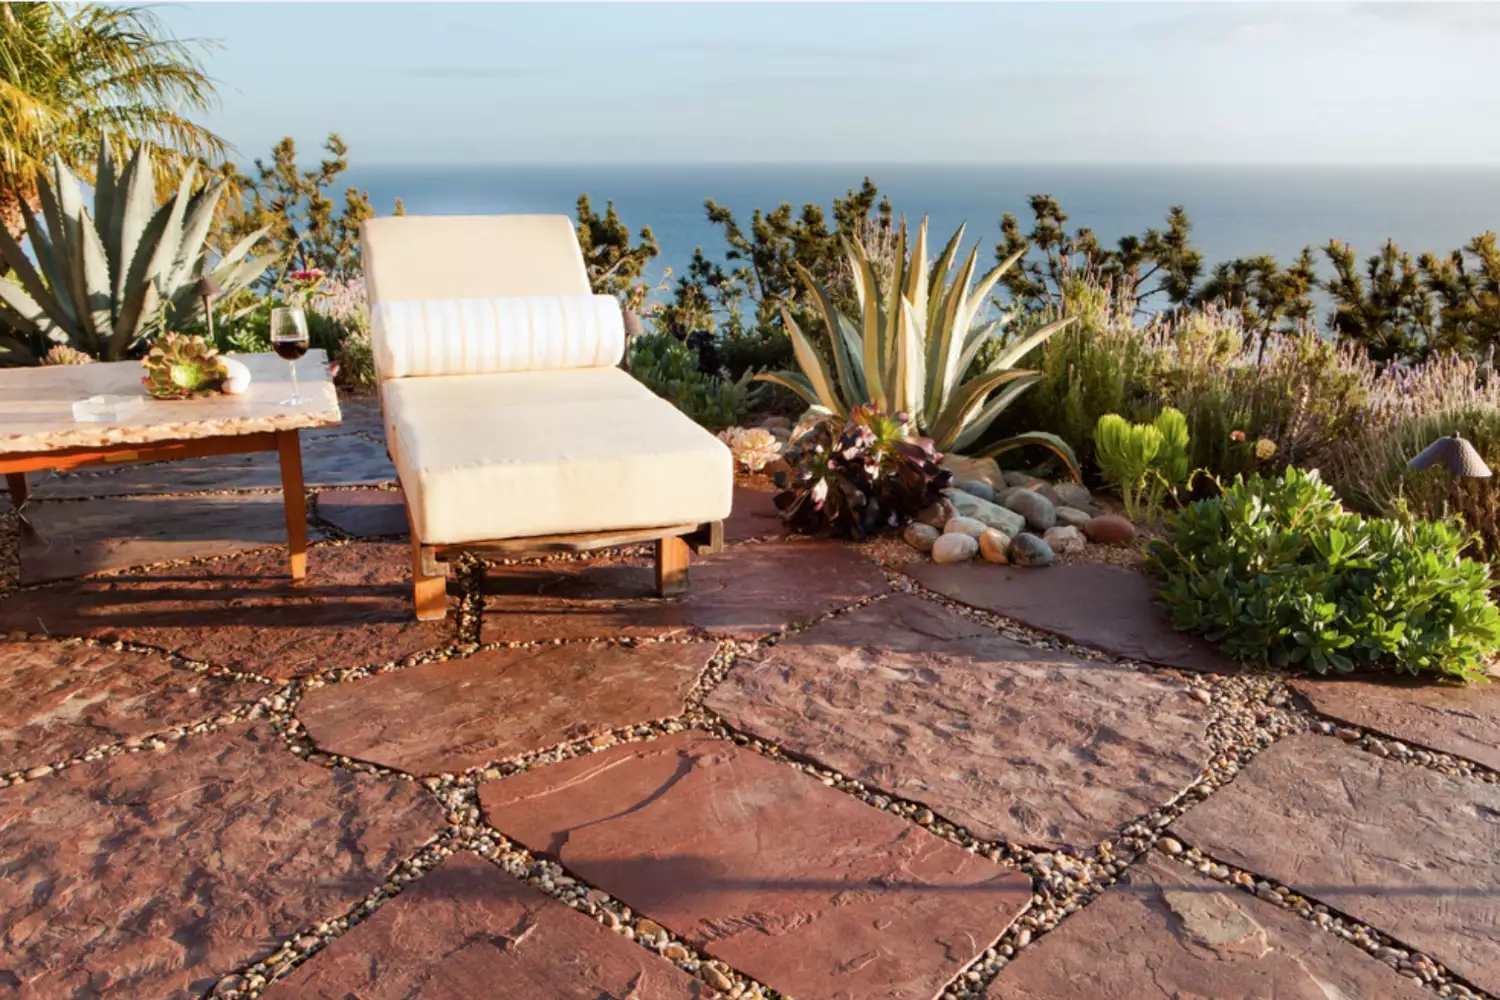 ocean view with lounge char and plants